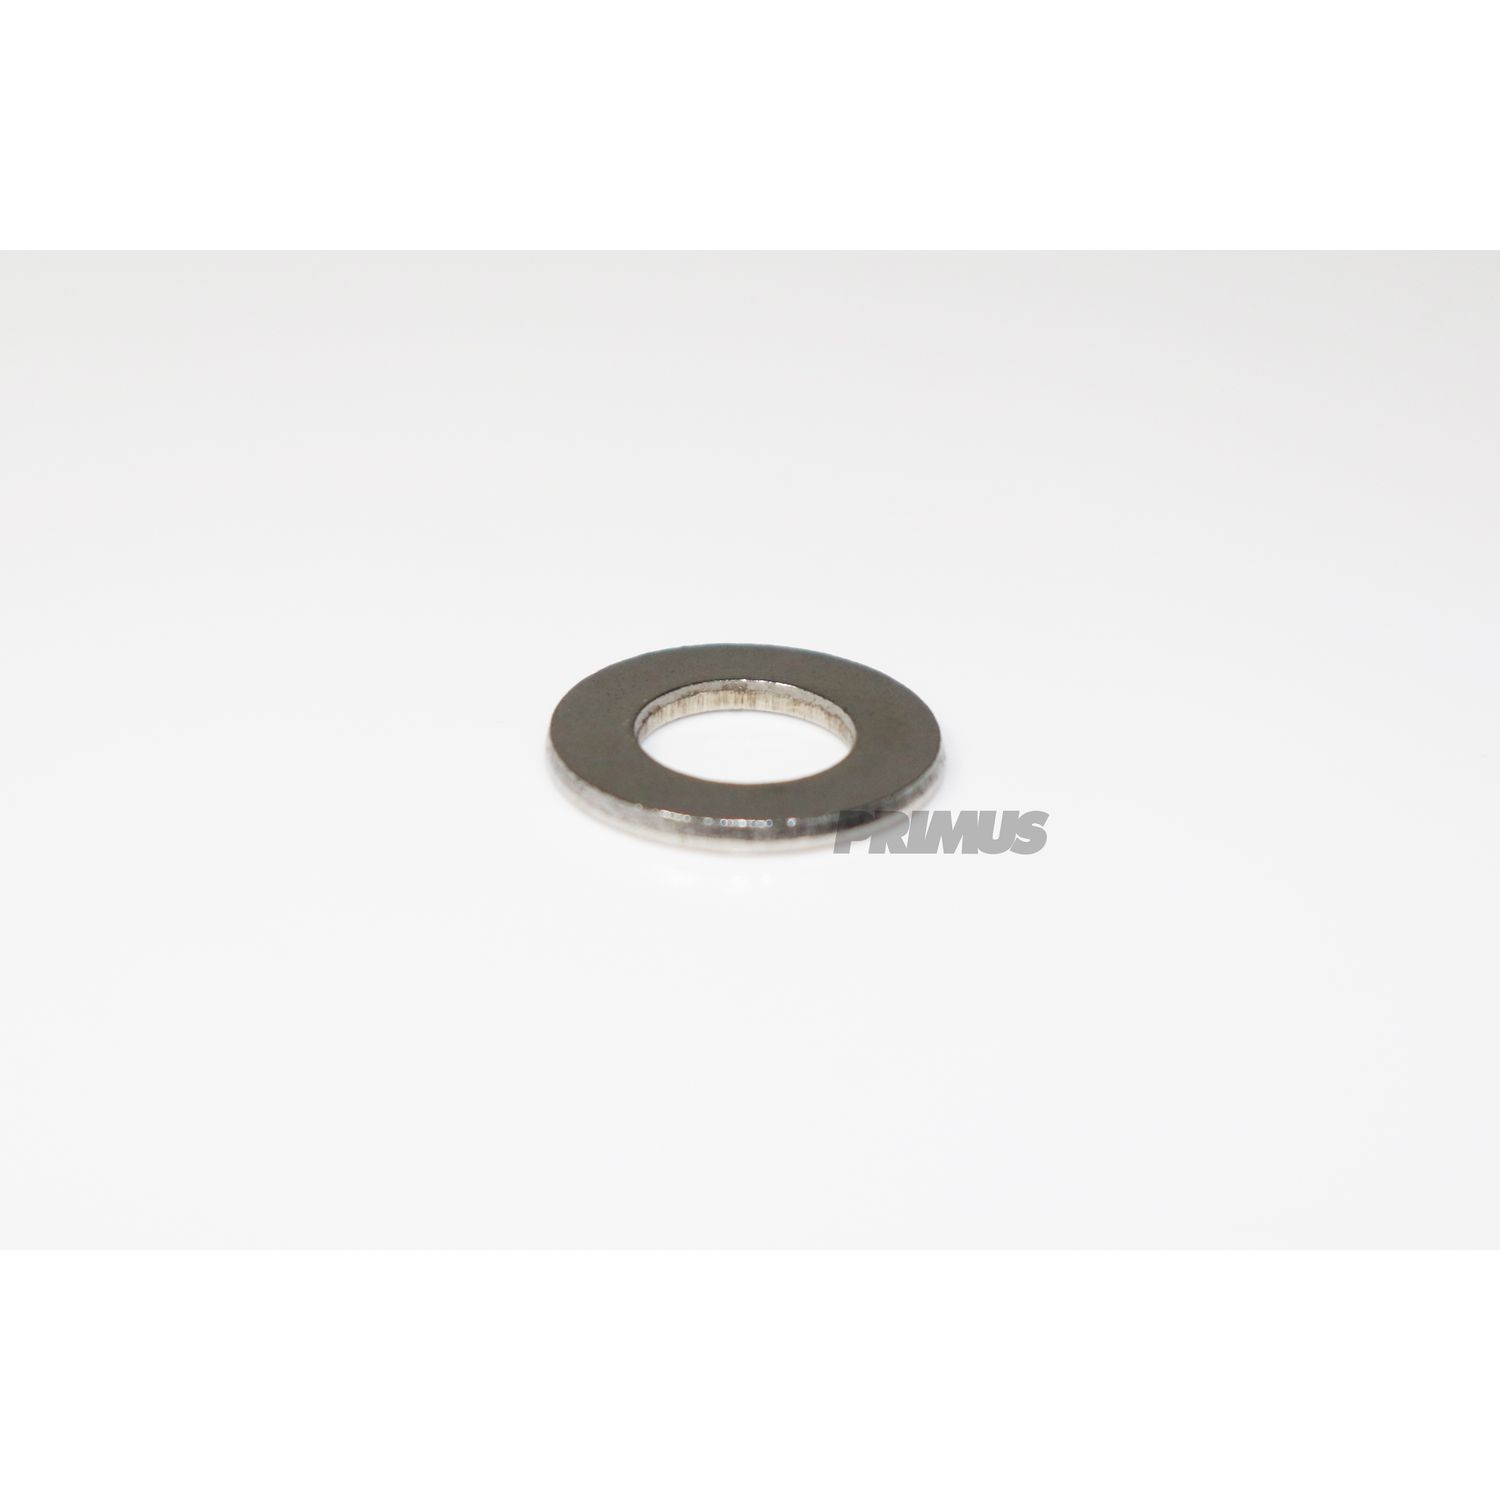 "3/8"" STAINLESS STEEL FLAT WASHER, 3/4"" OD"